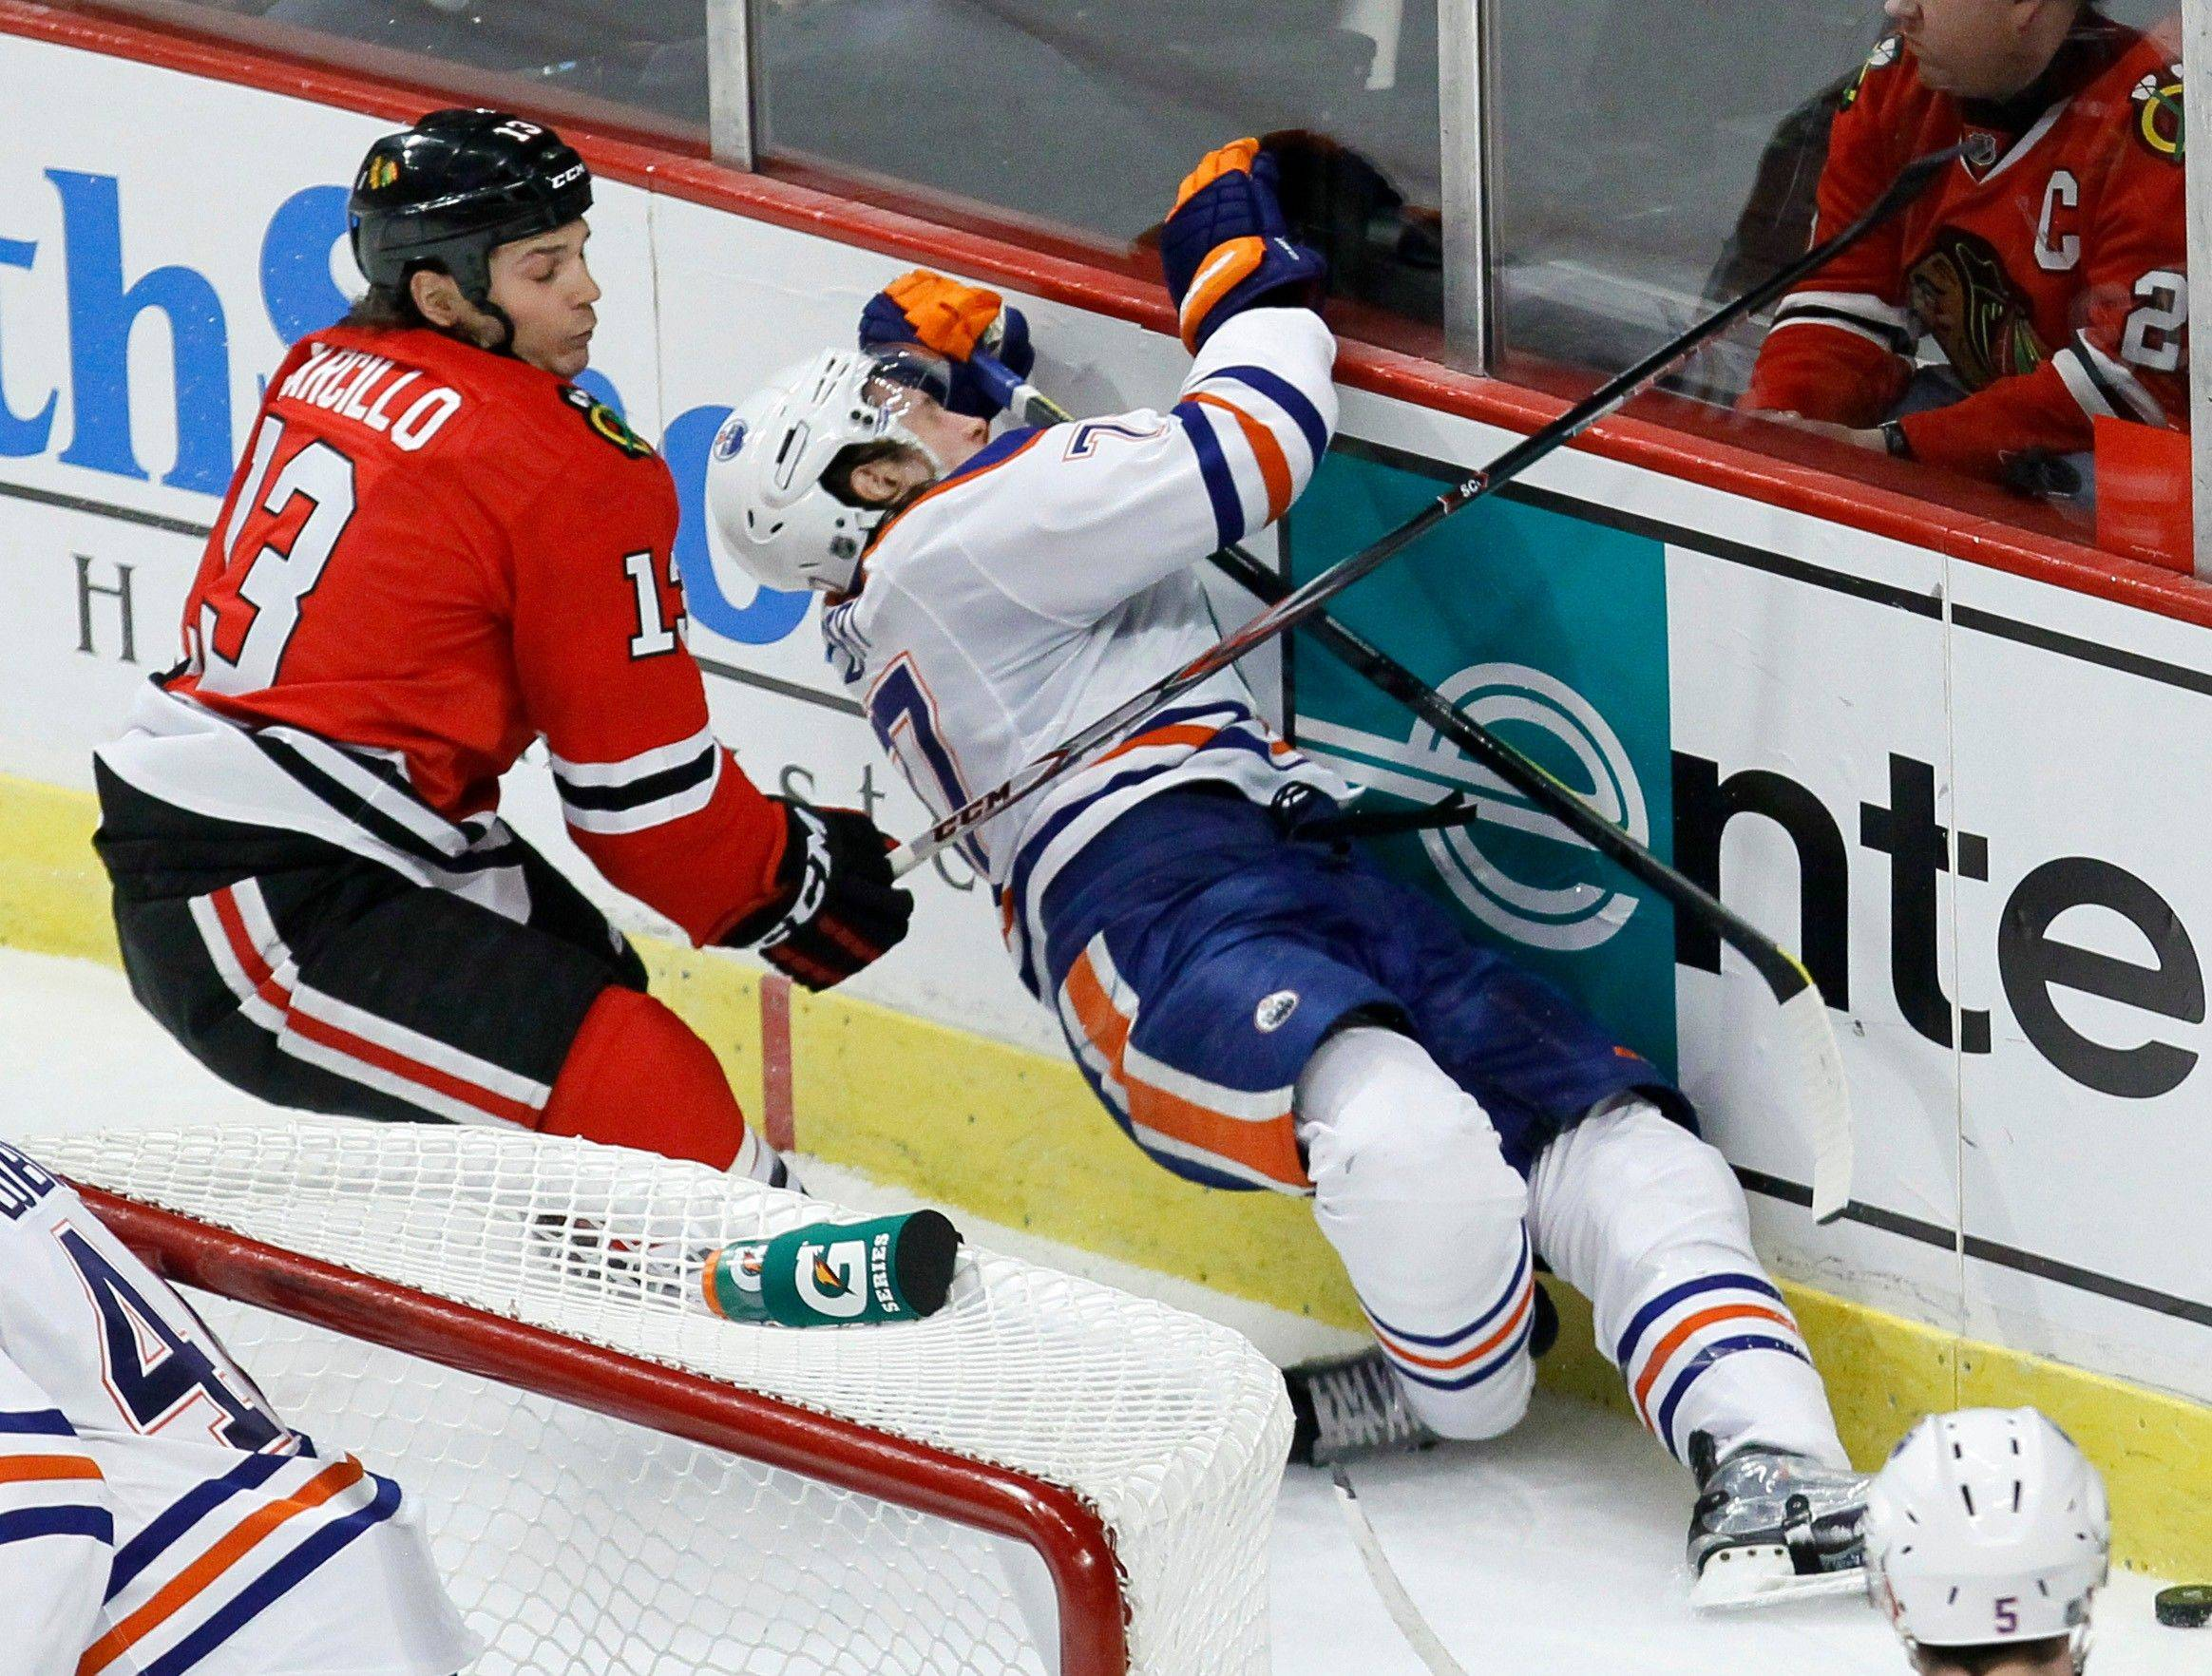 This hit by Daniel Carcillo against Edmonton's Tom Gilbert ended up getting Carcillo a seven-game suspension, as well as ending the Hawks' winger's season.